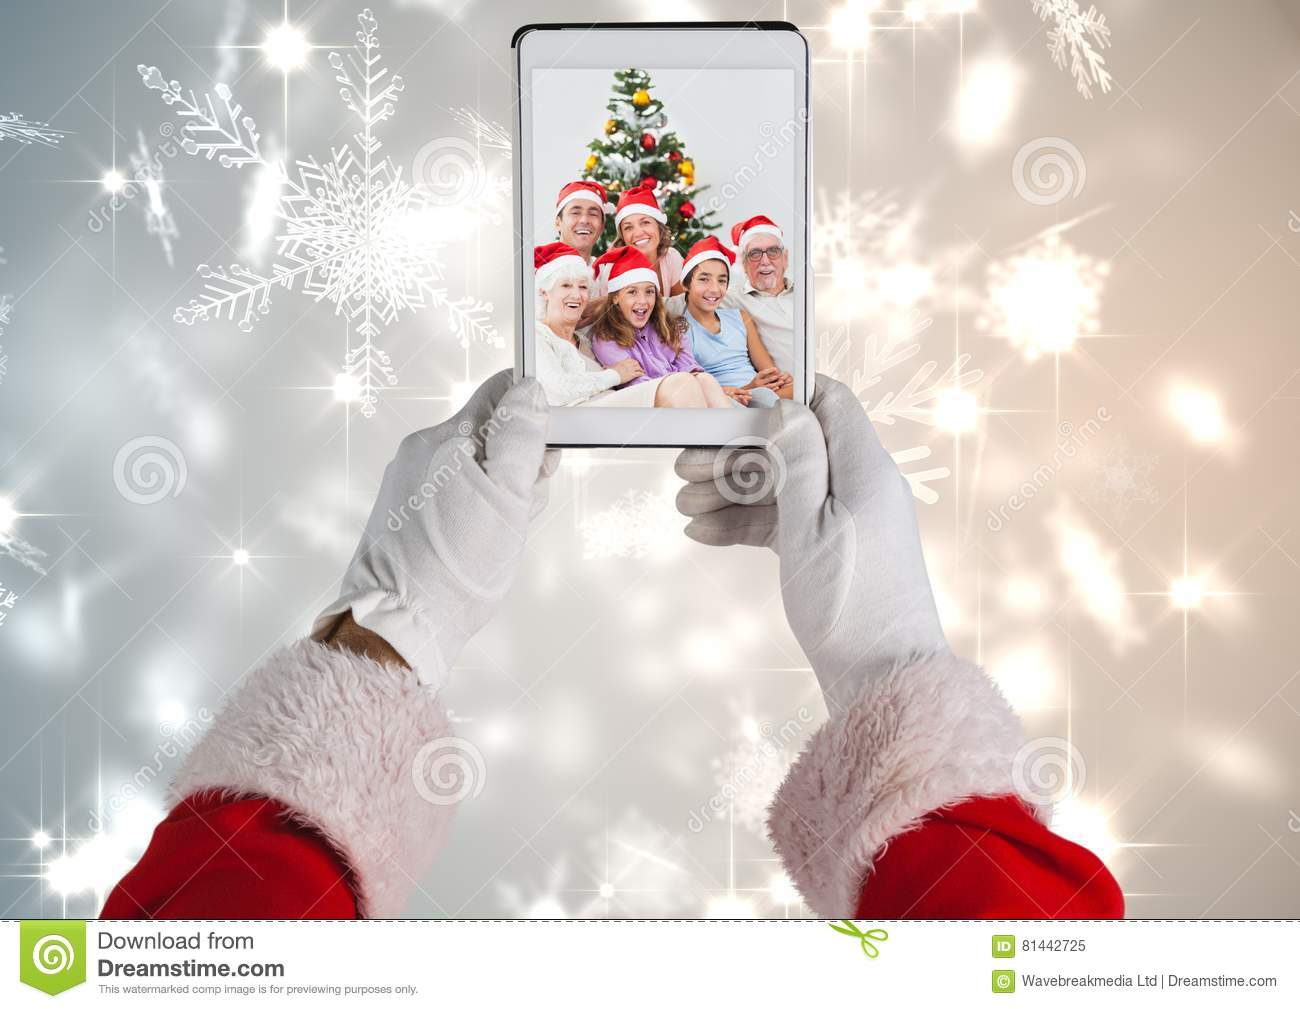 Santa claus holding a digital tablet with photo of christmas family